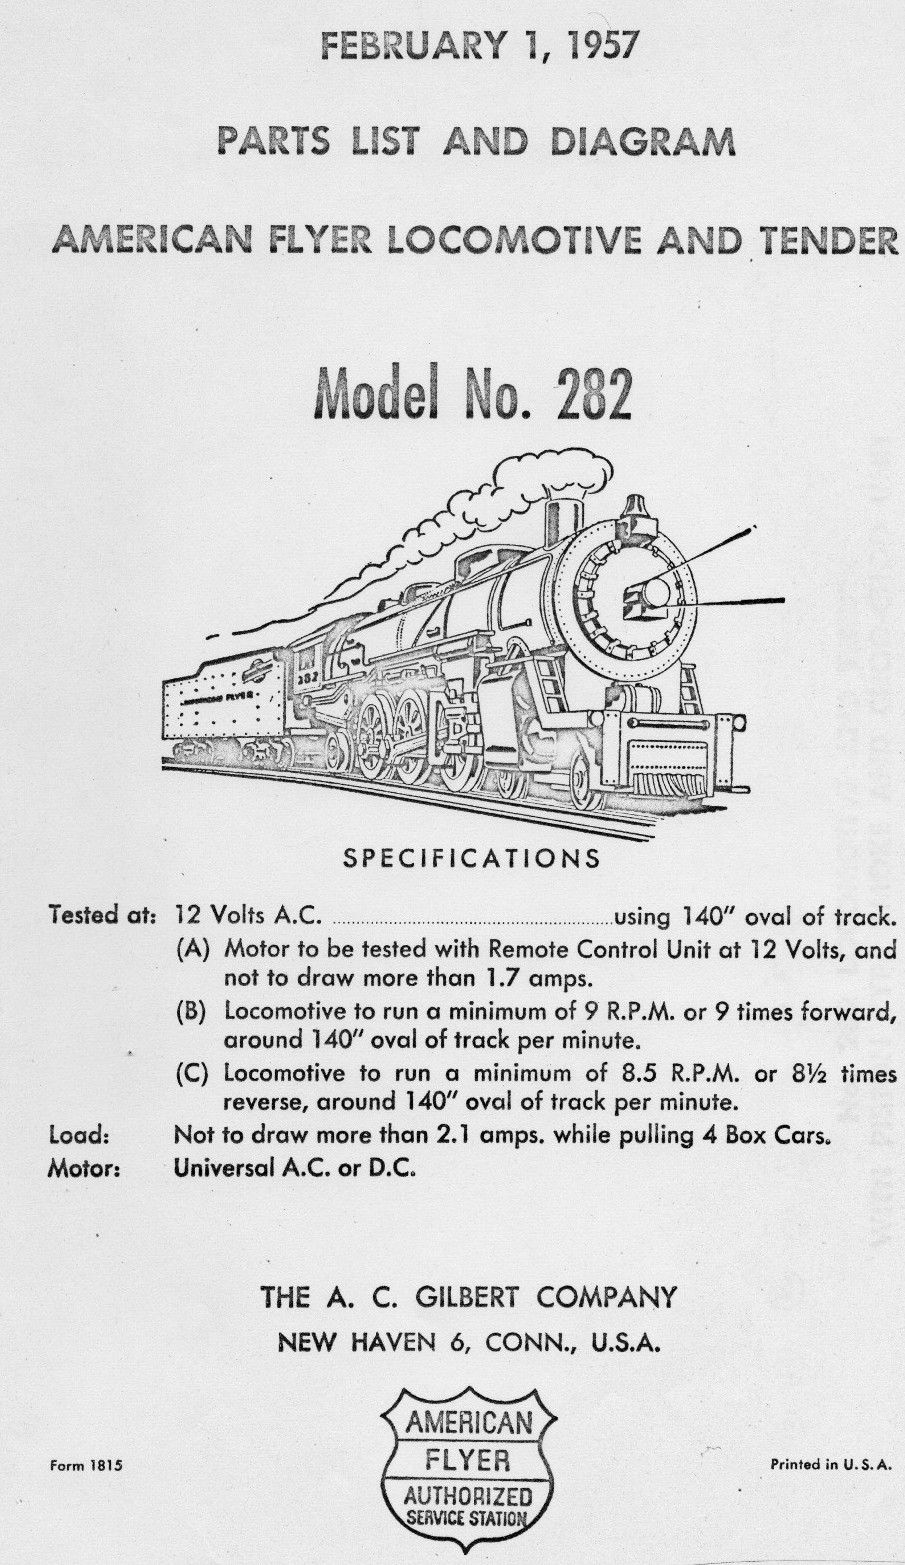 American Flyer Locomotive 282 Chicago North Western Parts List and Diagram - Page 1